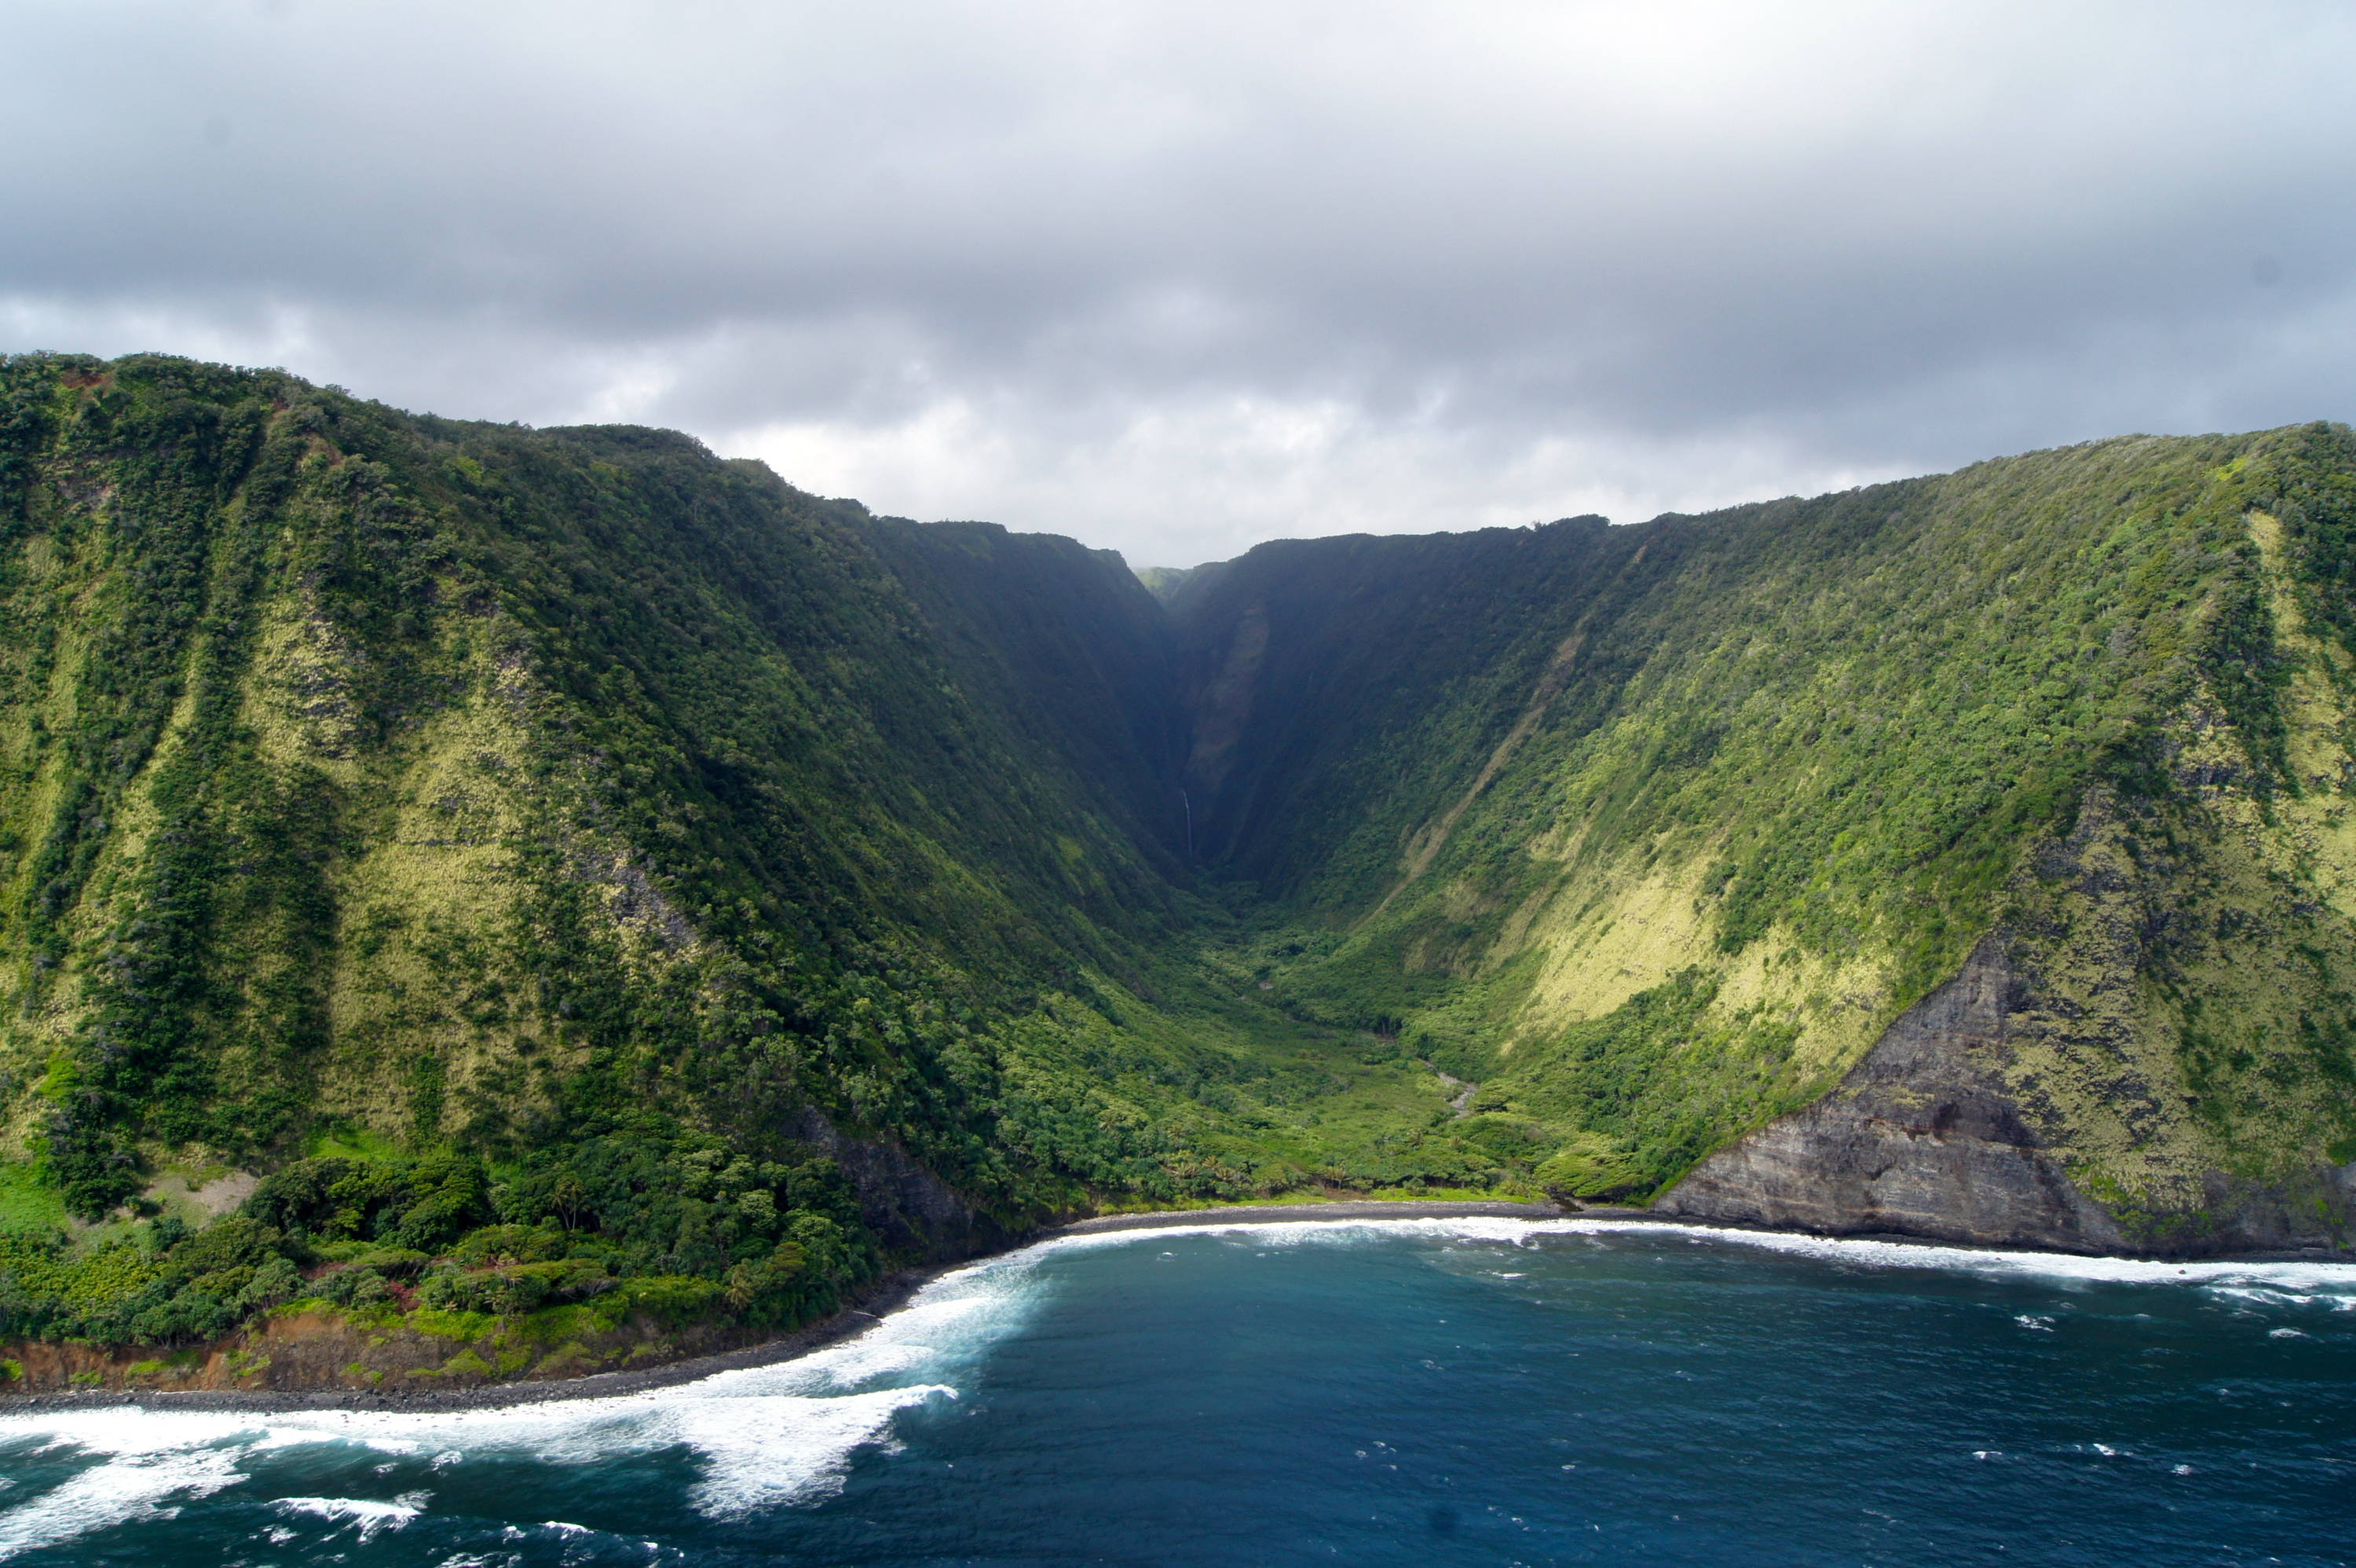 Kona & the Big Island of Hawaii: Things to Do & See. Stark blues and greens juxtapose as mountains give way to valley that leads to a waterfall on Hawaii's Big Island.